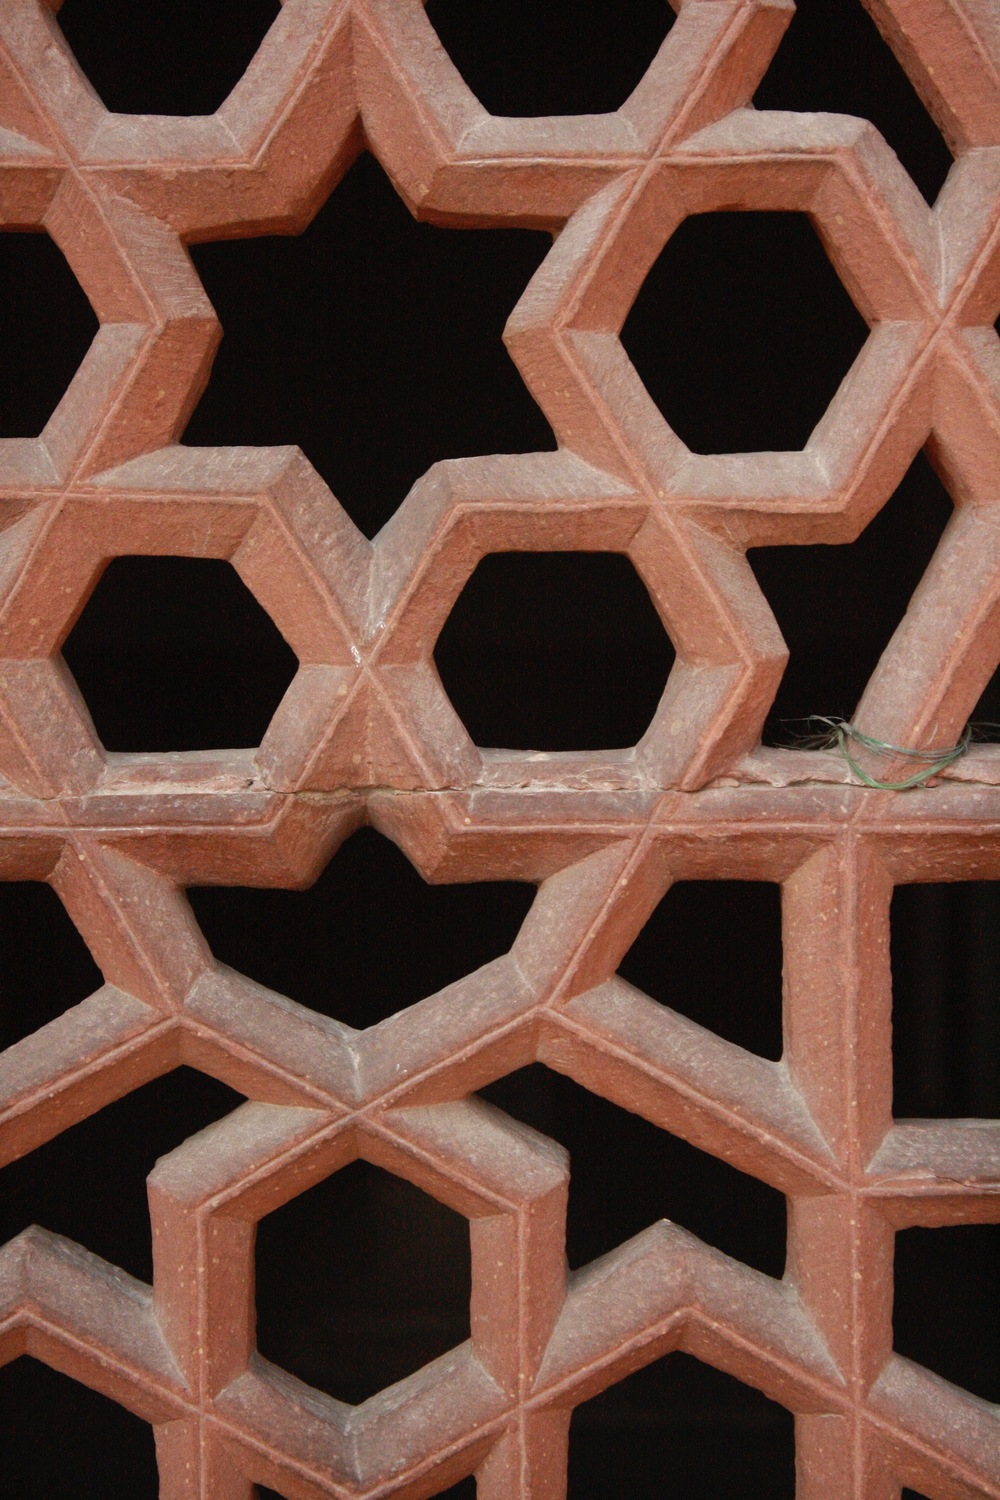 Spider web lattice work at Humayun's Tomb